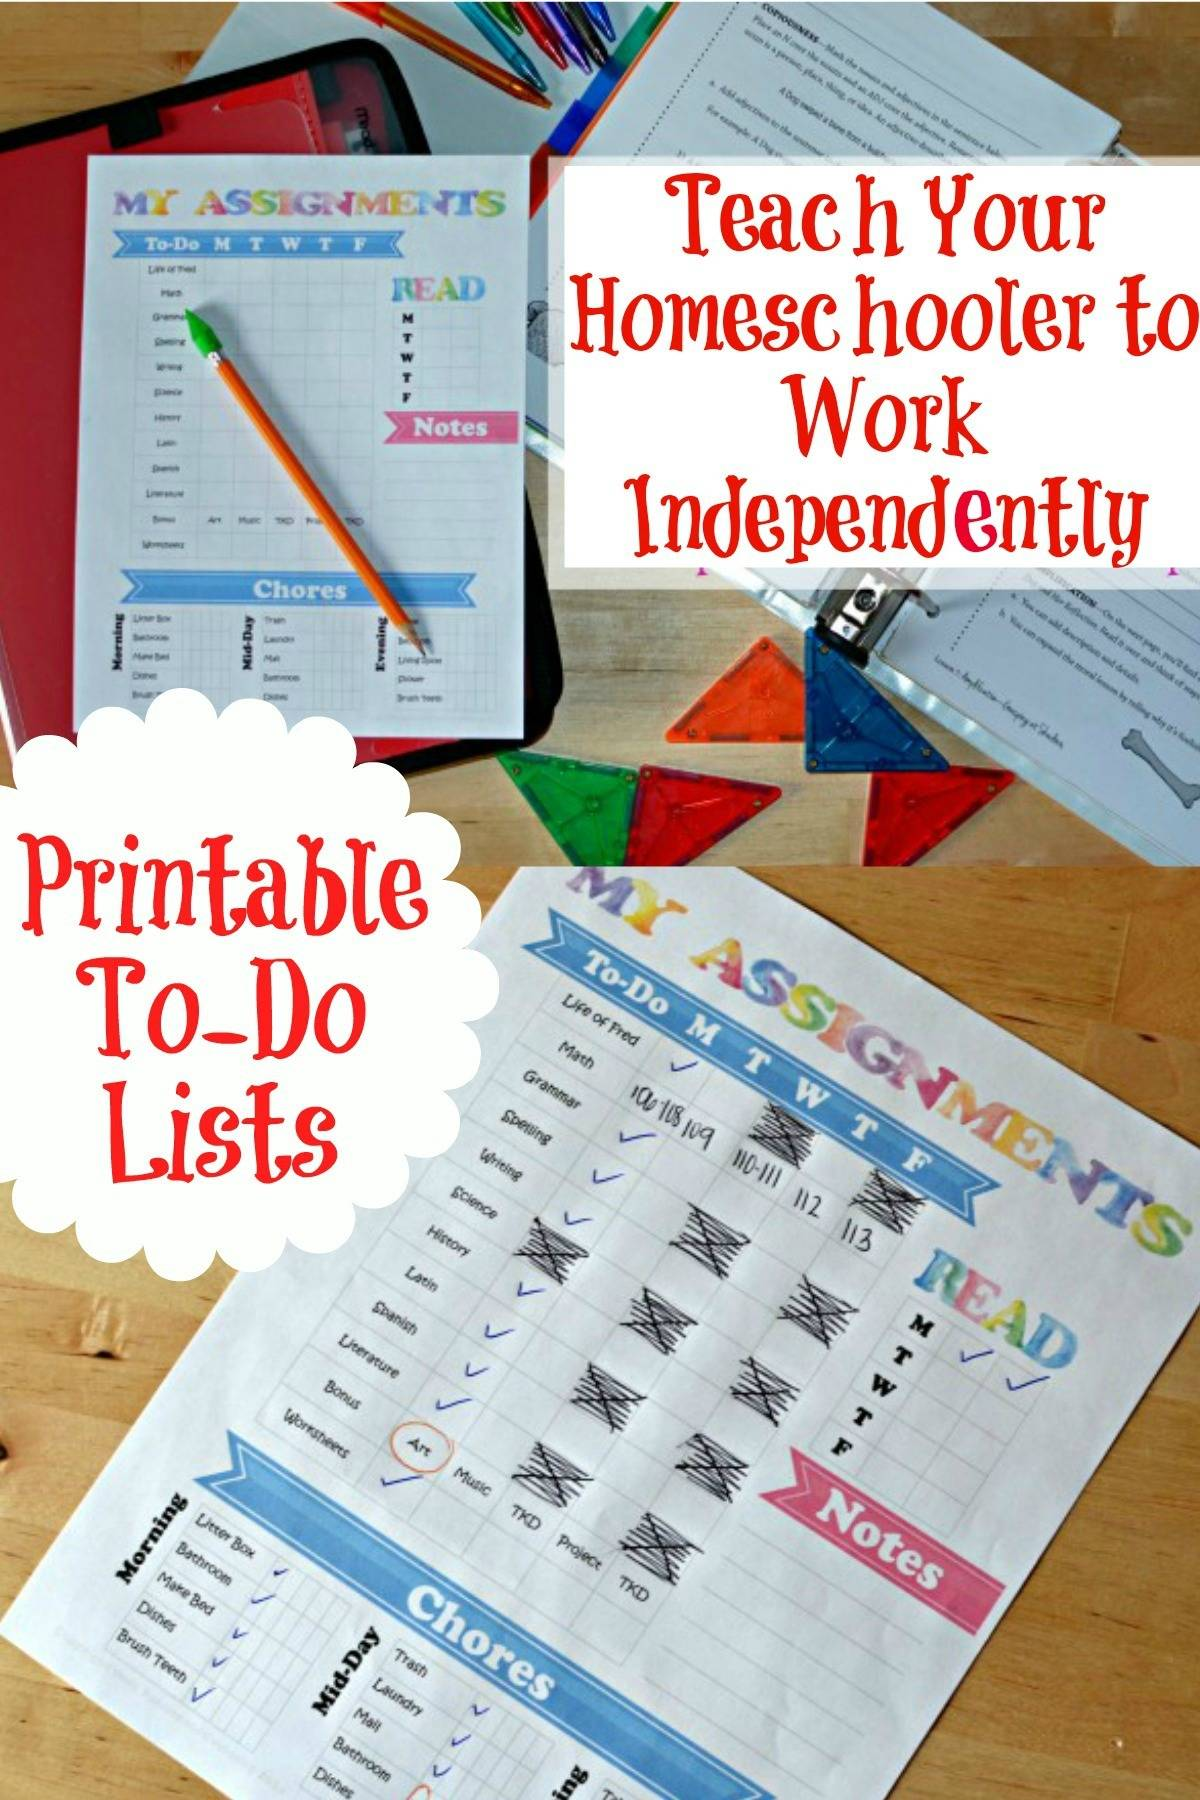 How To Teach Your Homeschooler To Work Independently